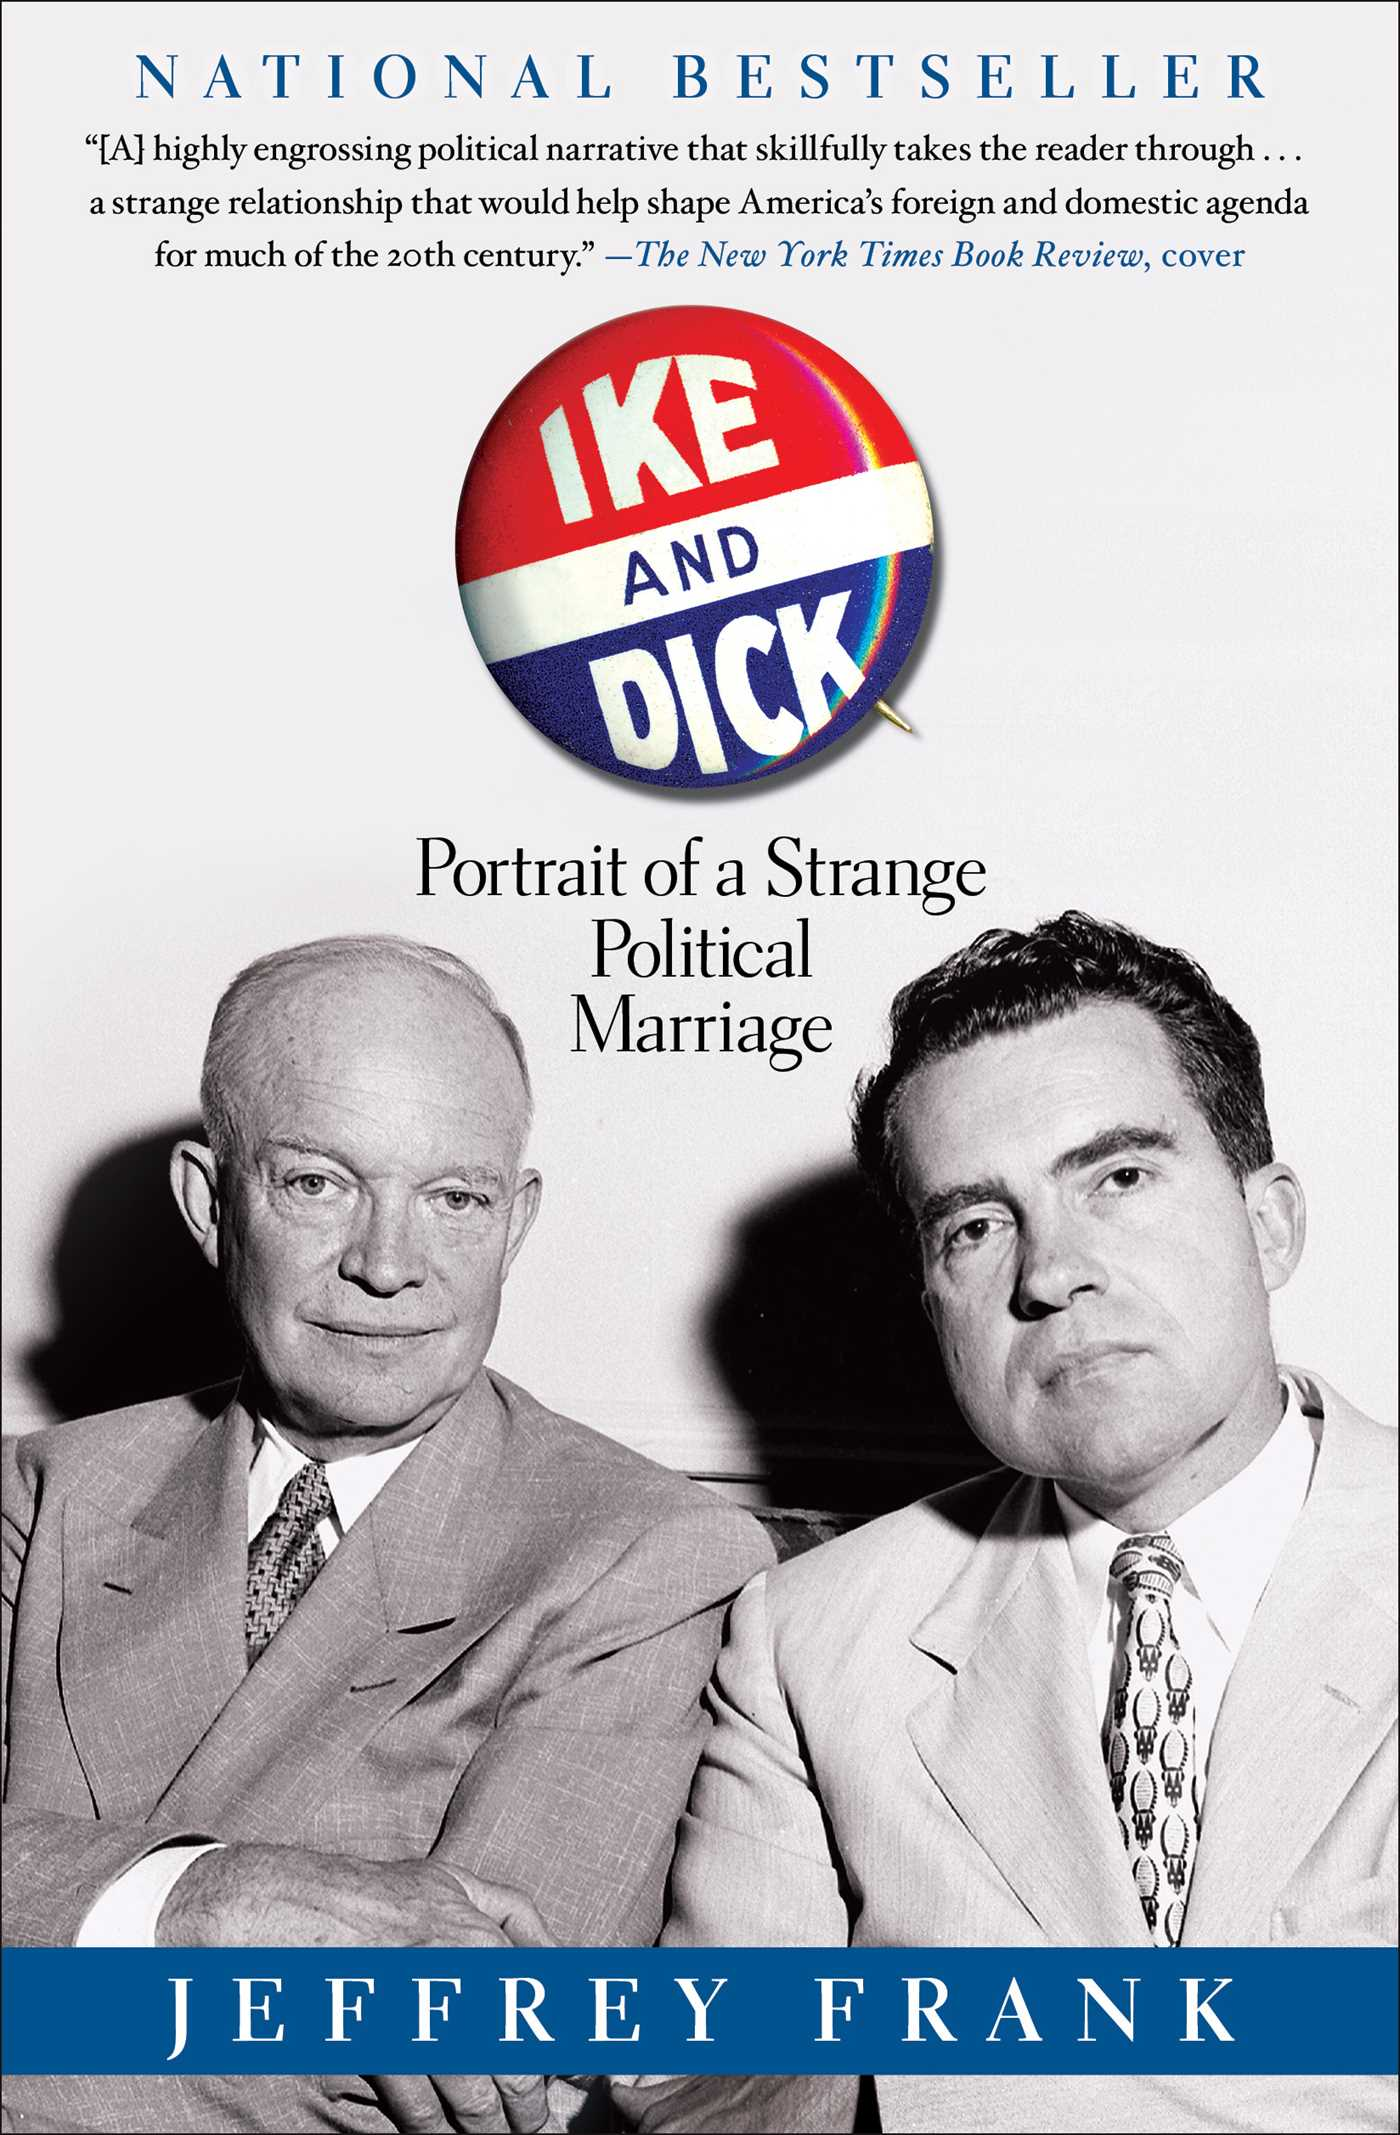 Ike and dick 9781416588207 hr